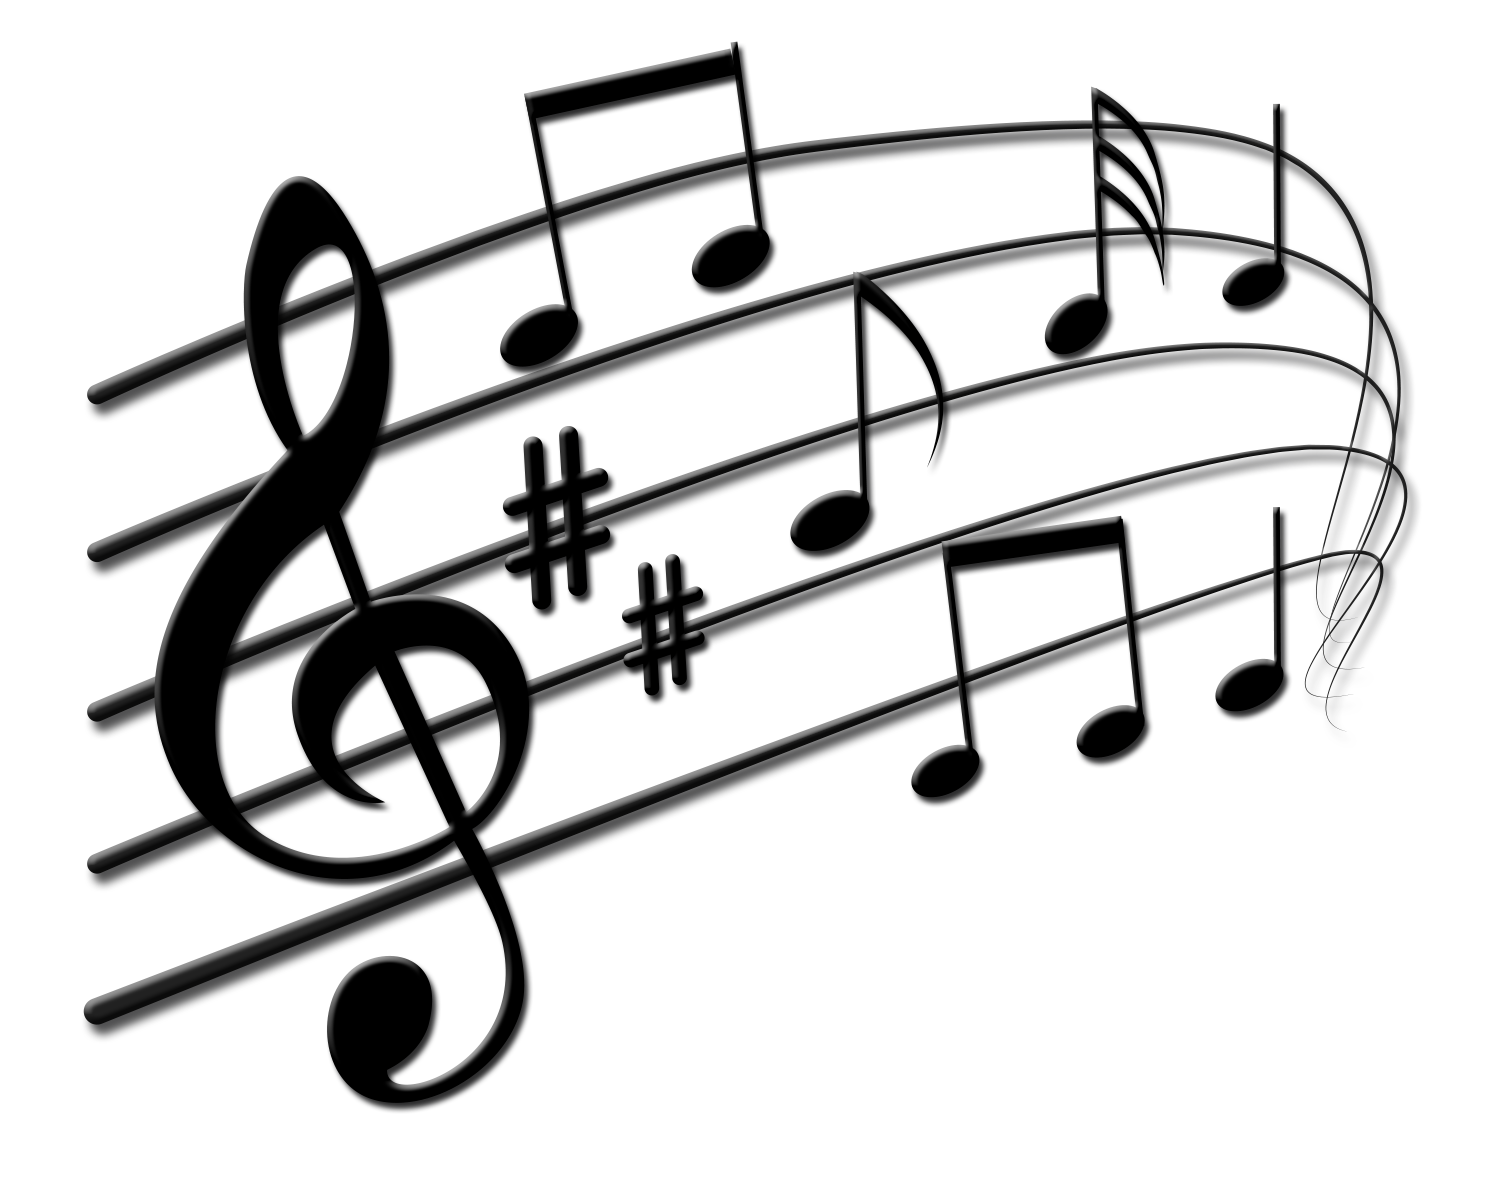 From a PDF file, PDFtoMusic extracts in a few seconds the music-related elements, and enables the score to be played, or exported in miscellaneous formats, like MIDI, Myr (Harmony Assistant files), or in a digital audio format like WAV ou AIFF.